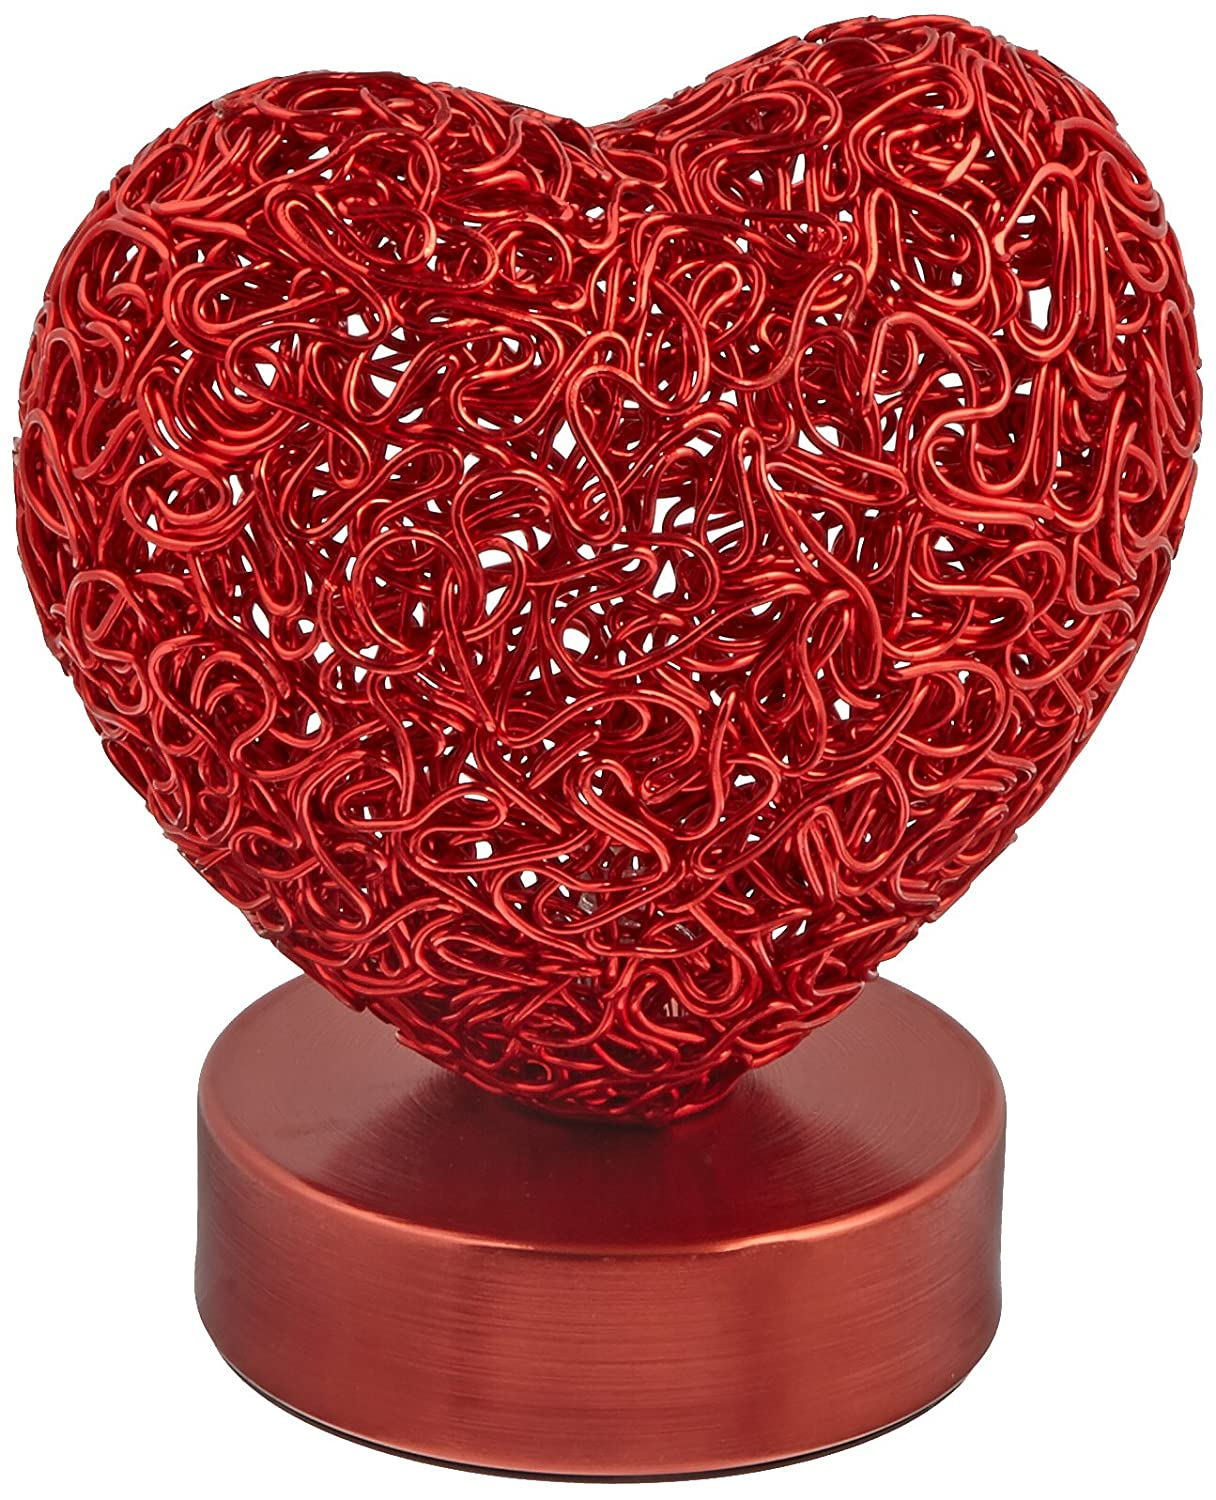 Arclite Heart Shaped Table Lamp, Battery Operated, Red: Amazon.com:  Industrial U0026 Scientific